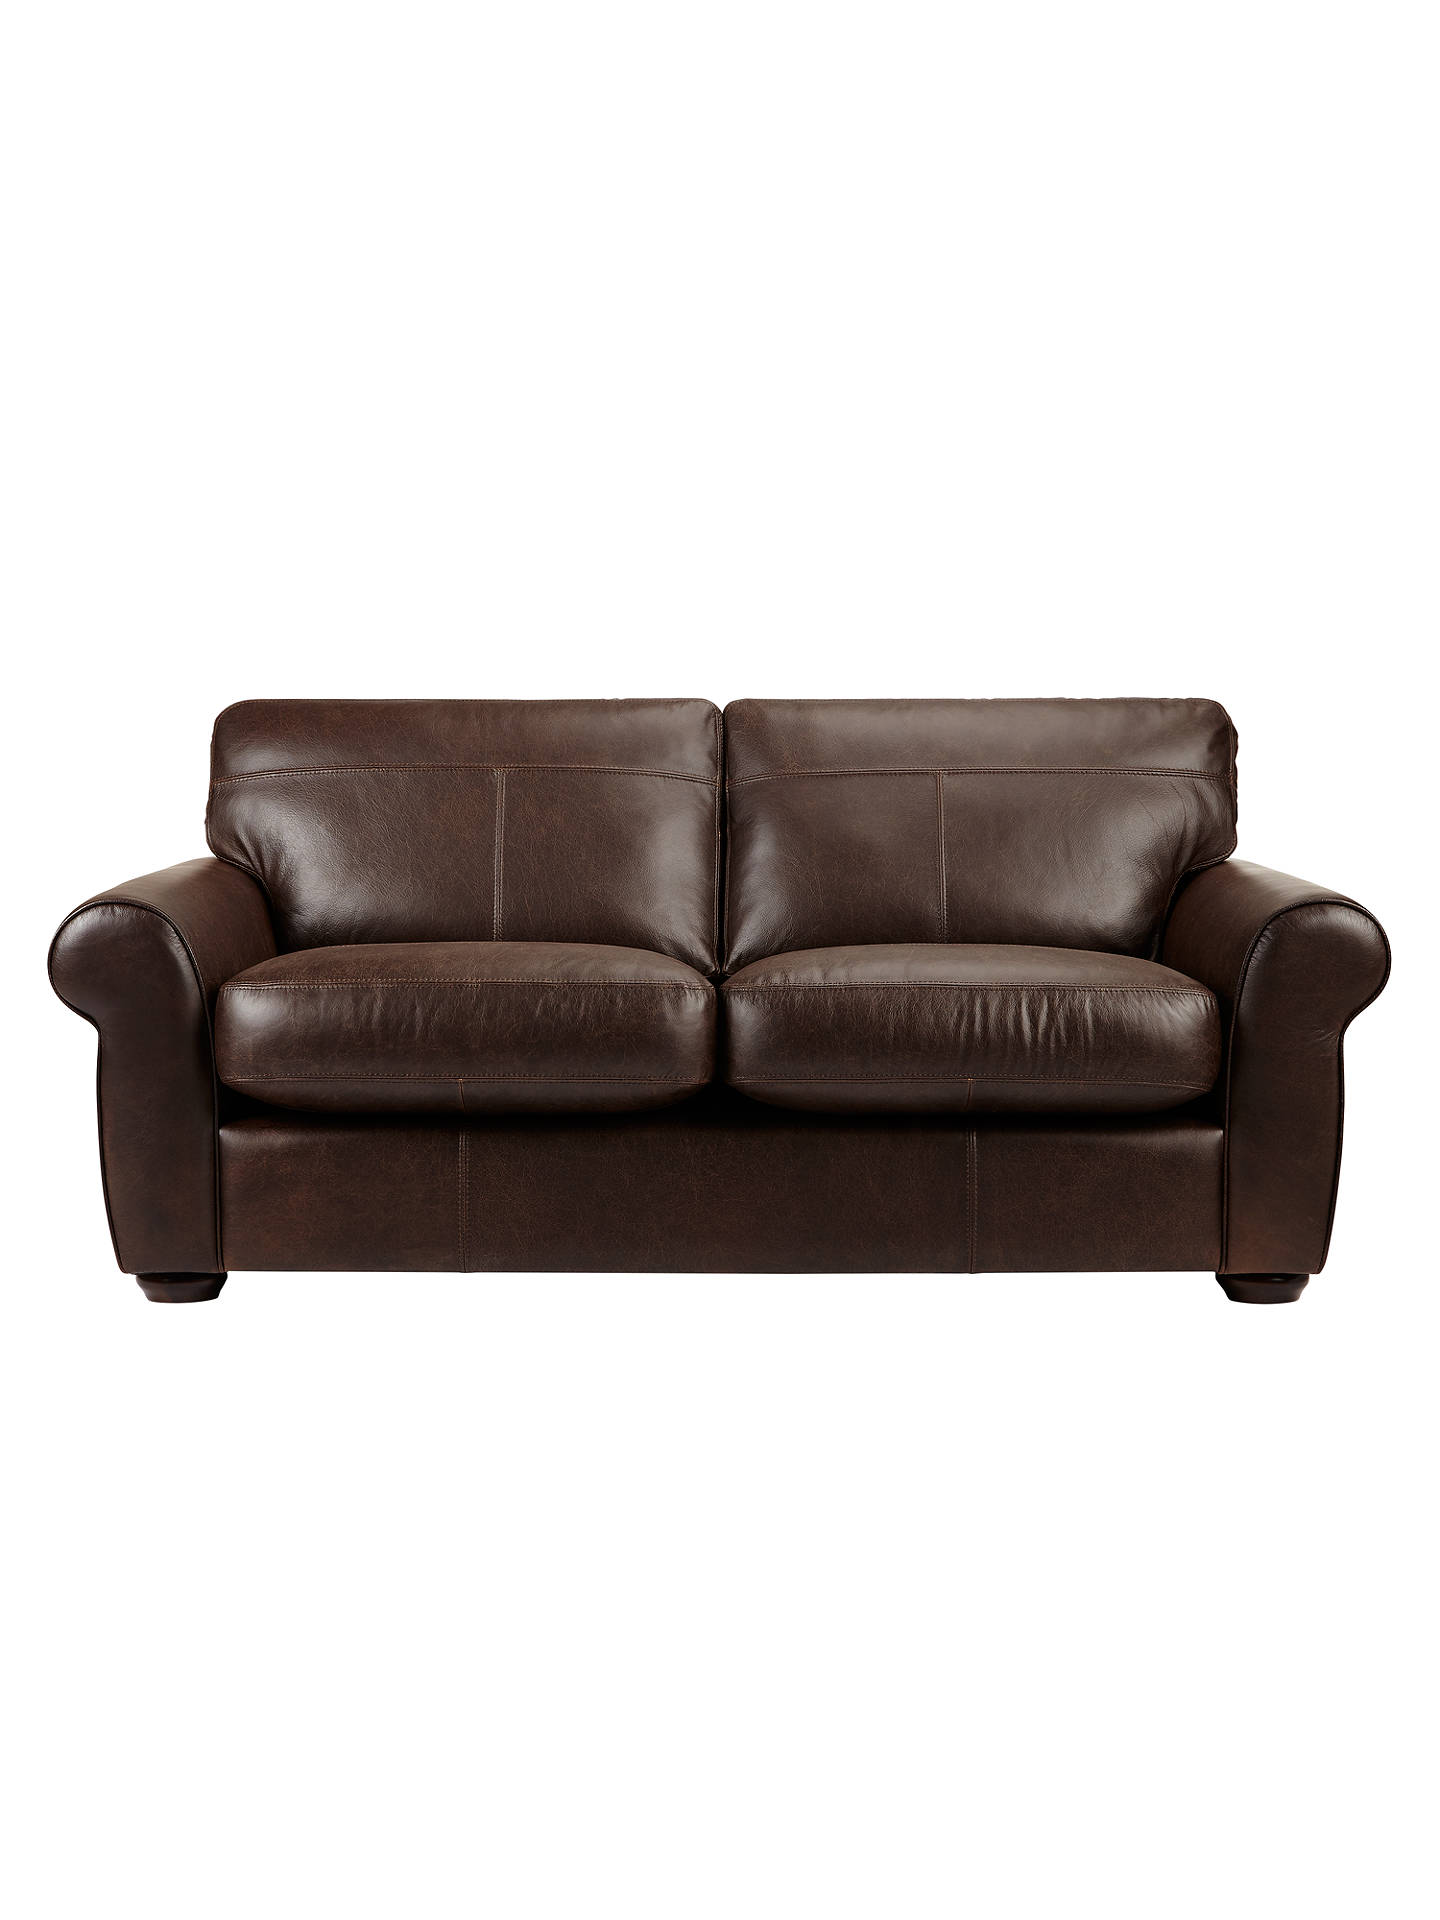 John Lewis Madison Semi Aniline Large Leather Sofa Colorado Online At Johnlewis